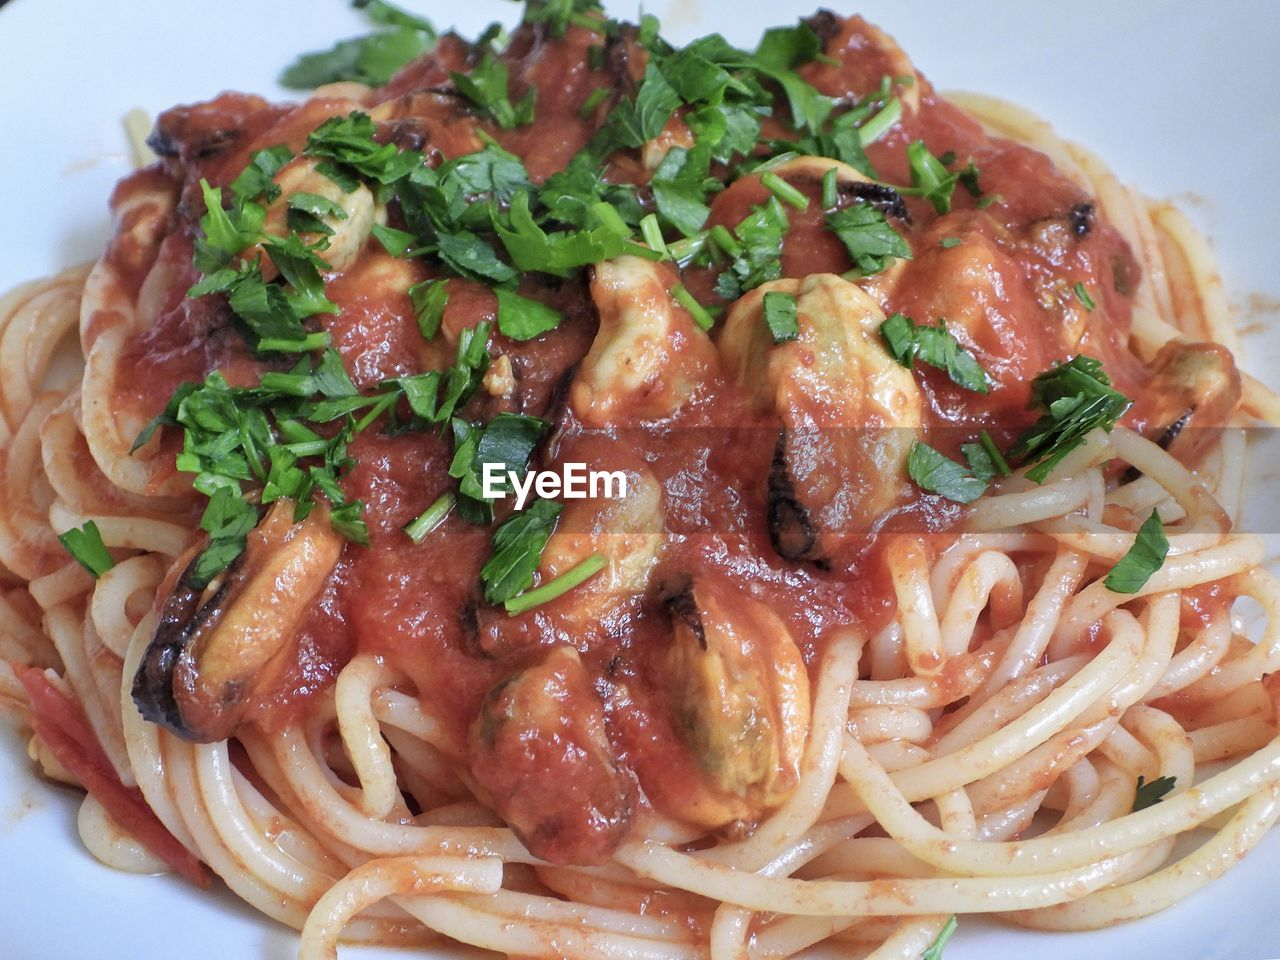 food, ready-to-eat, food and drink, freshness, close-up, italian food, pasta, plate, meat, indoors, meal, still life, wellbeing, healthy eating, indulgence, serving size, no people, garnish, spaghetti, vegetable, herb, crockery, temptation, dinner, tomato sauce, coriander